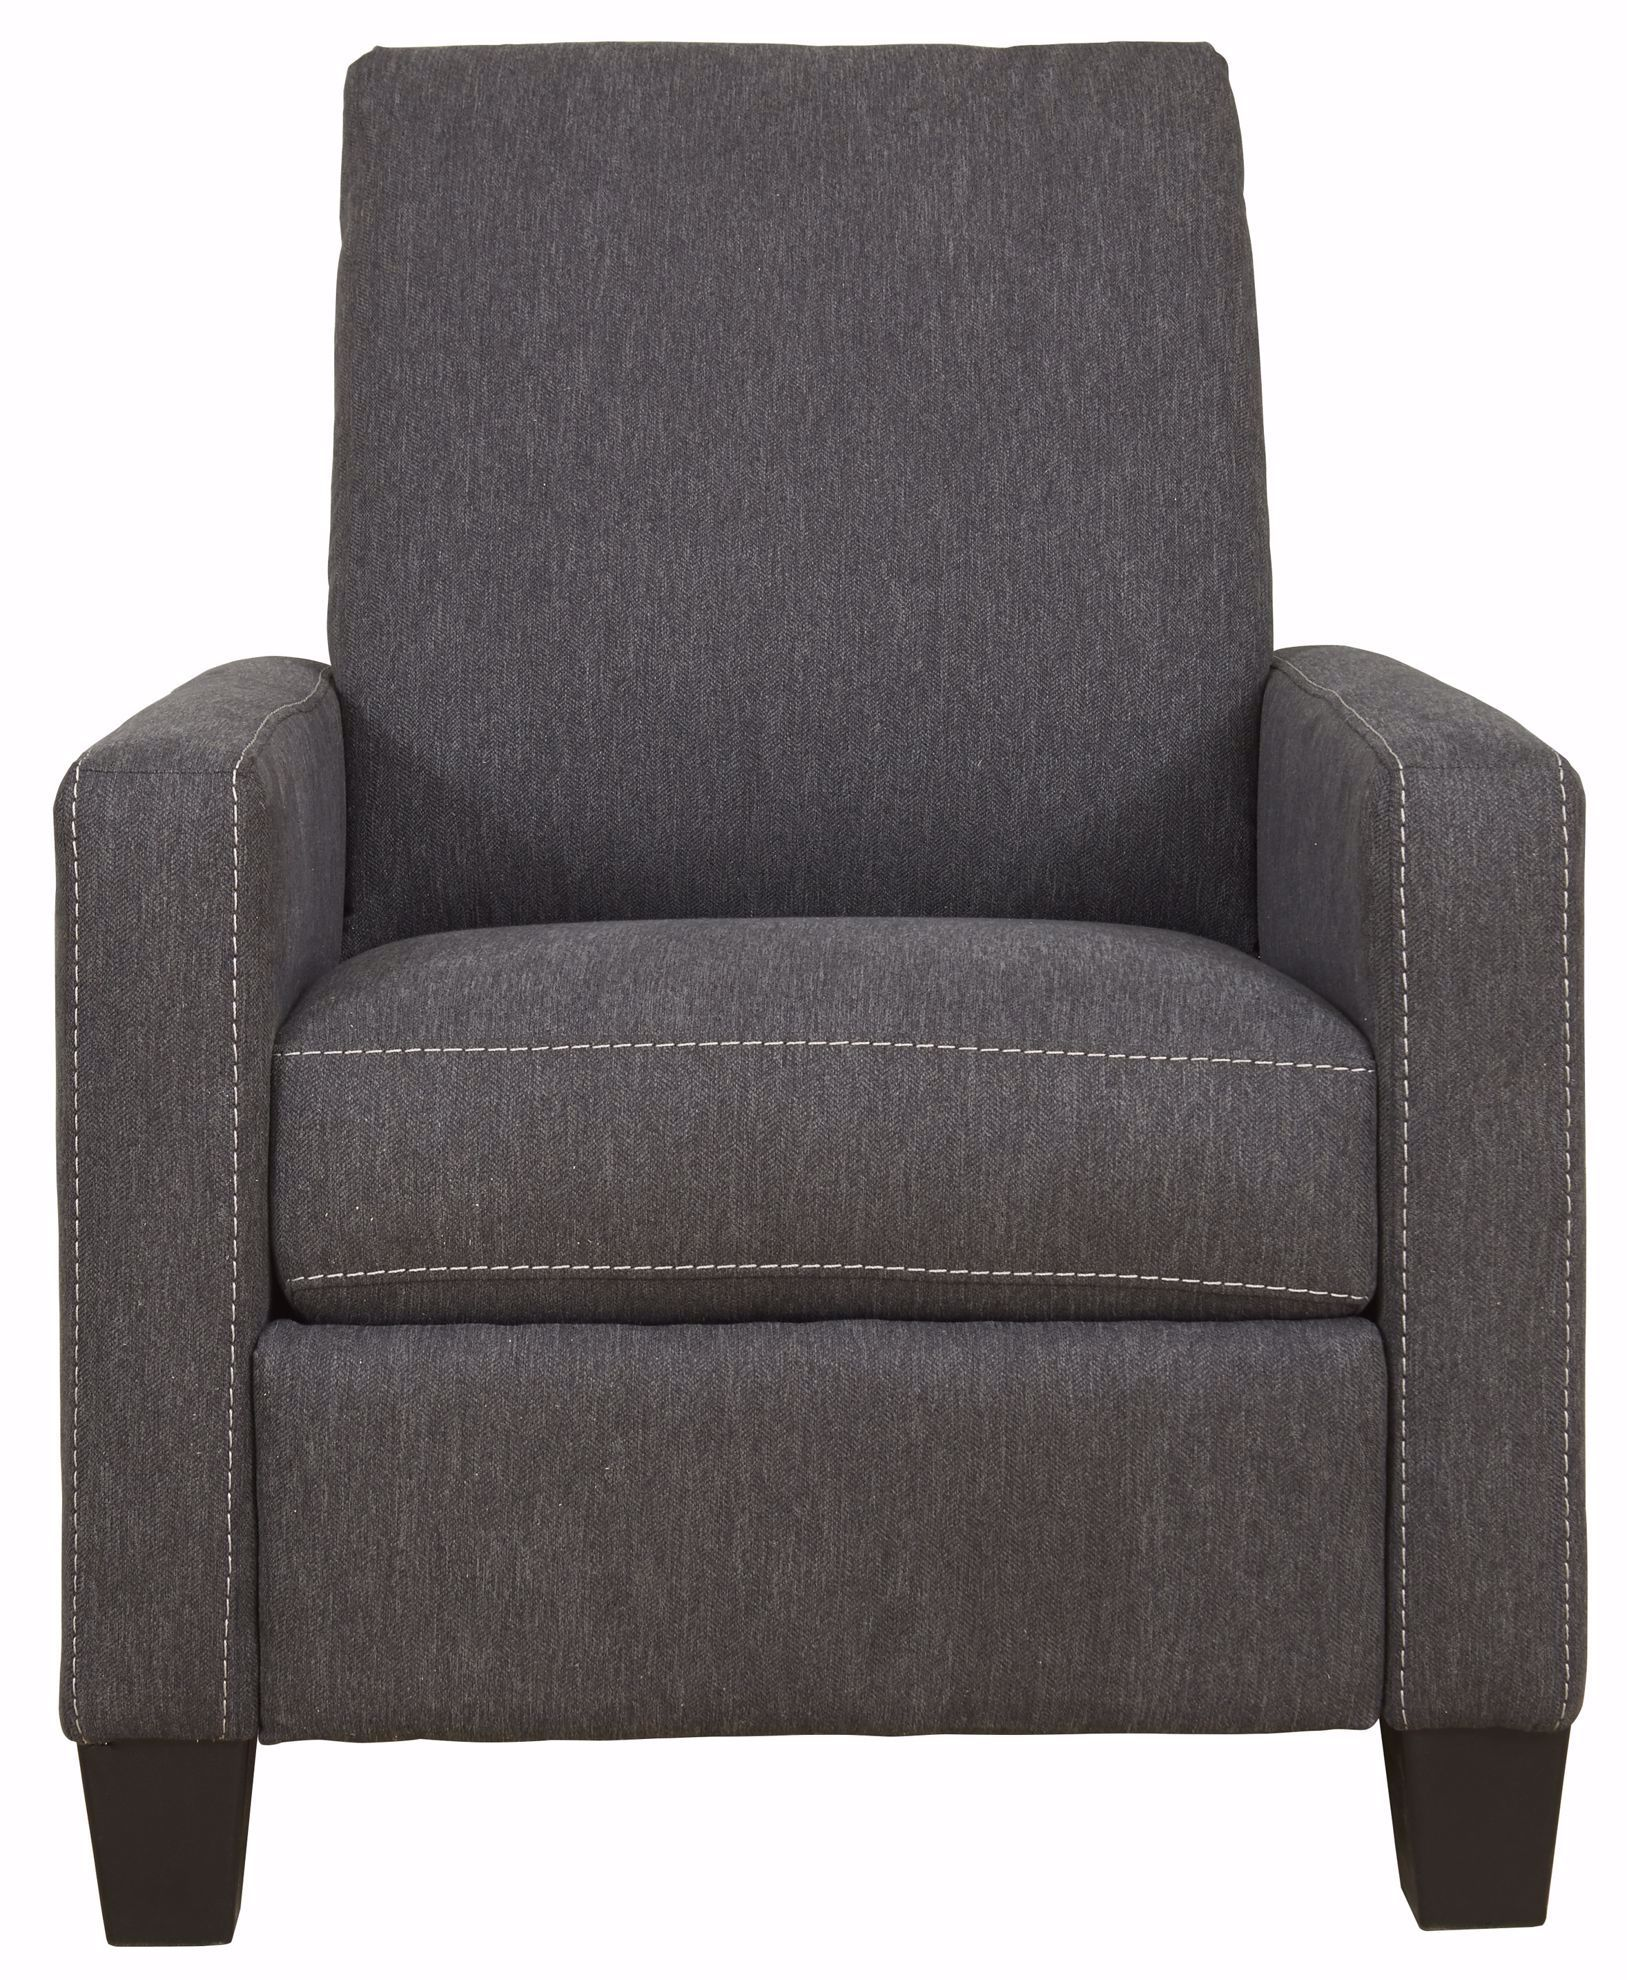 Picture of Dattner Charcoal Low Leg Recliner